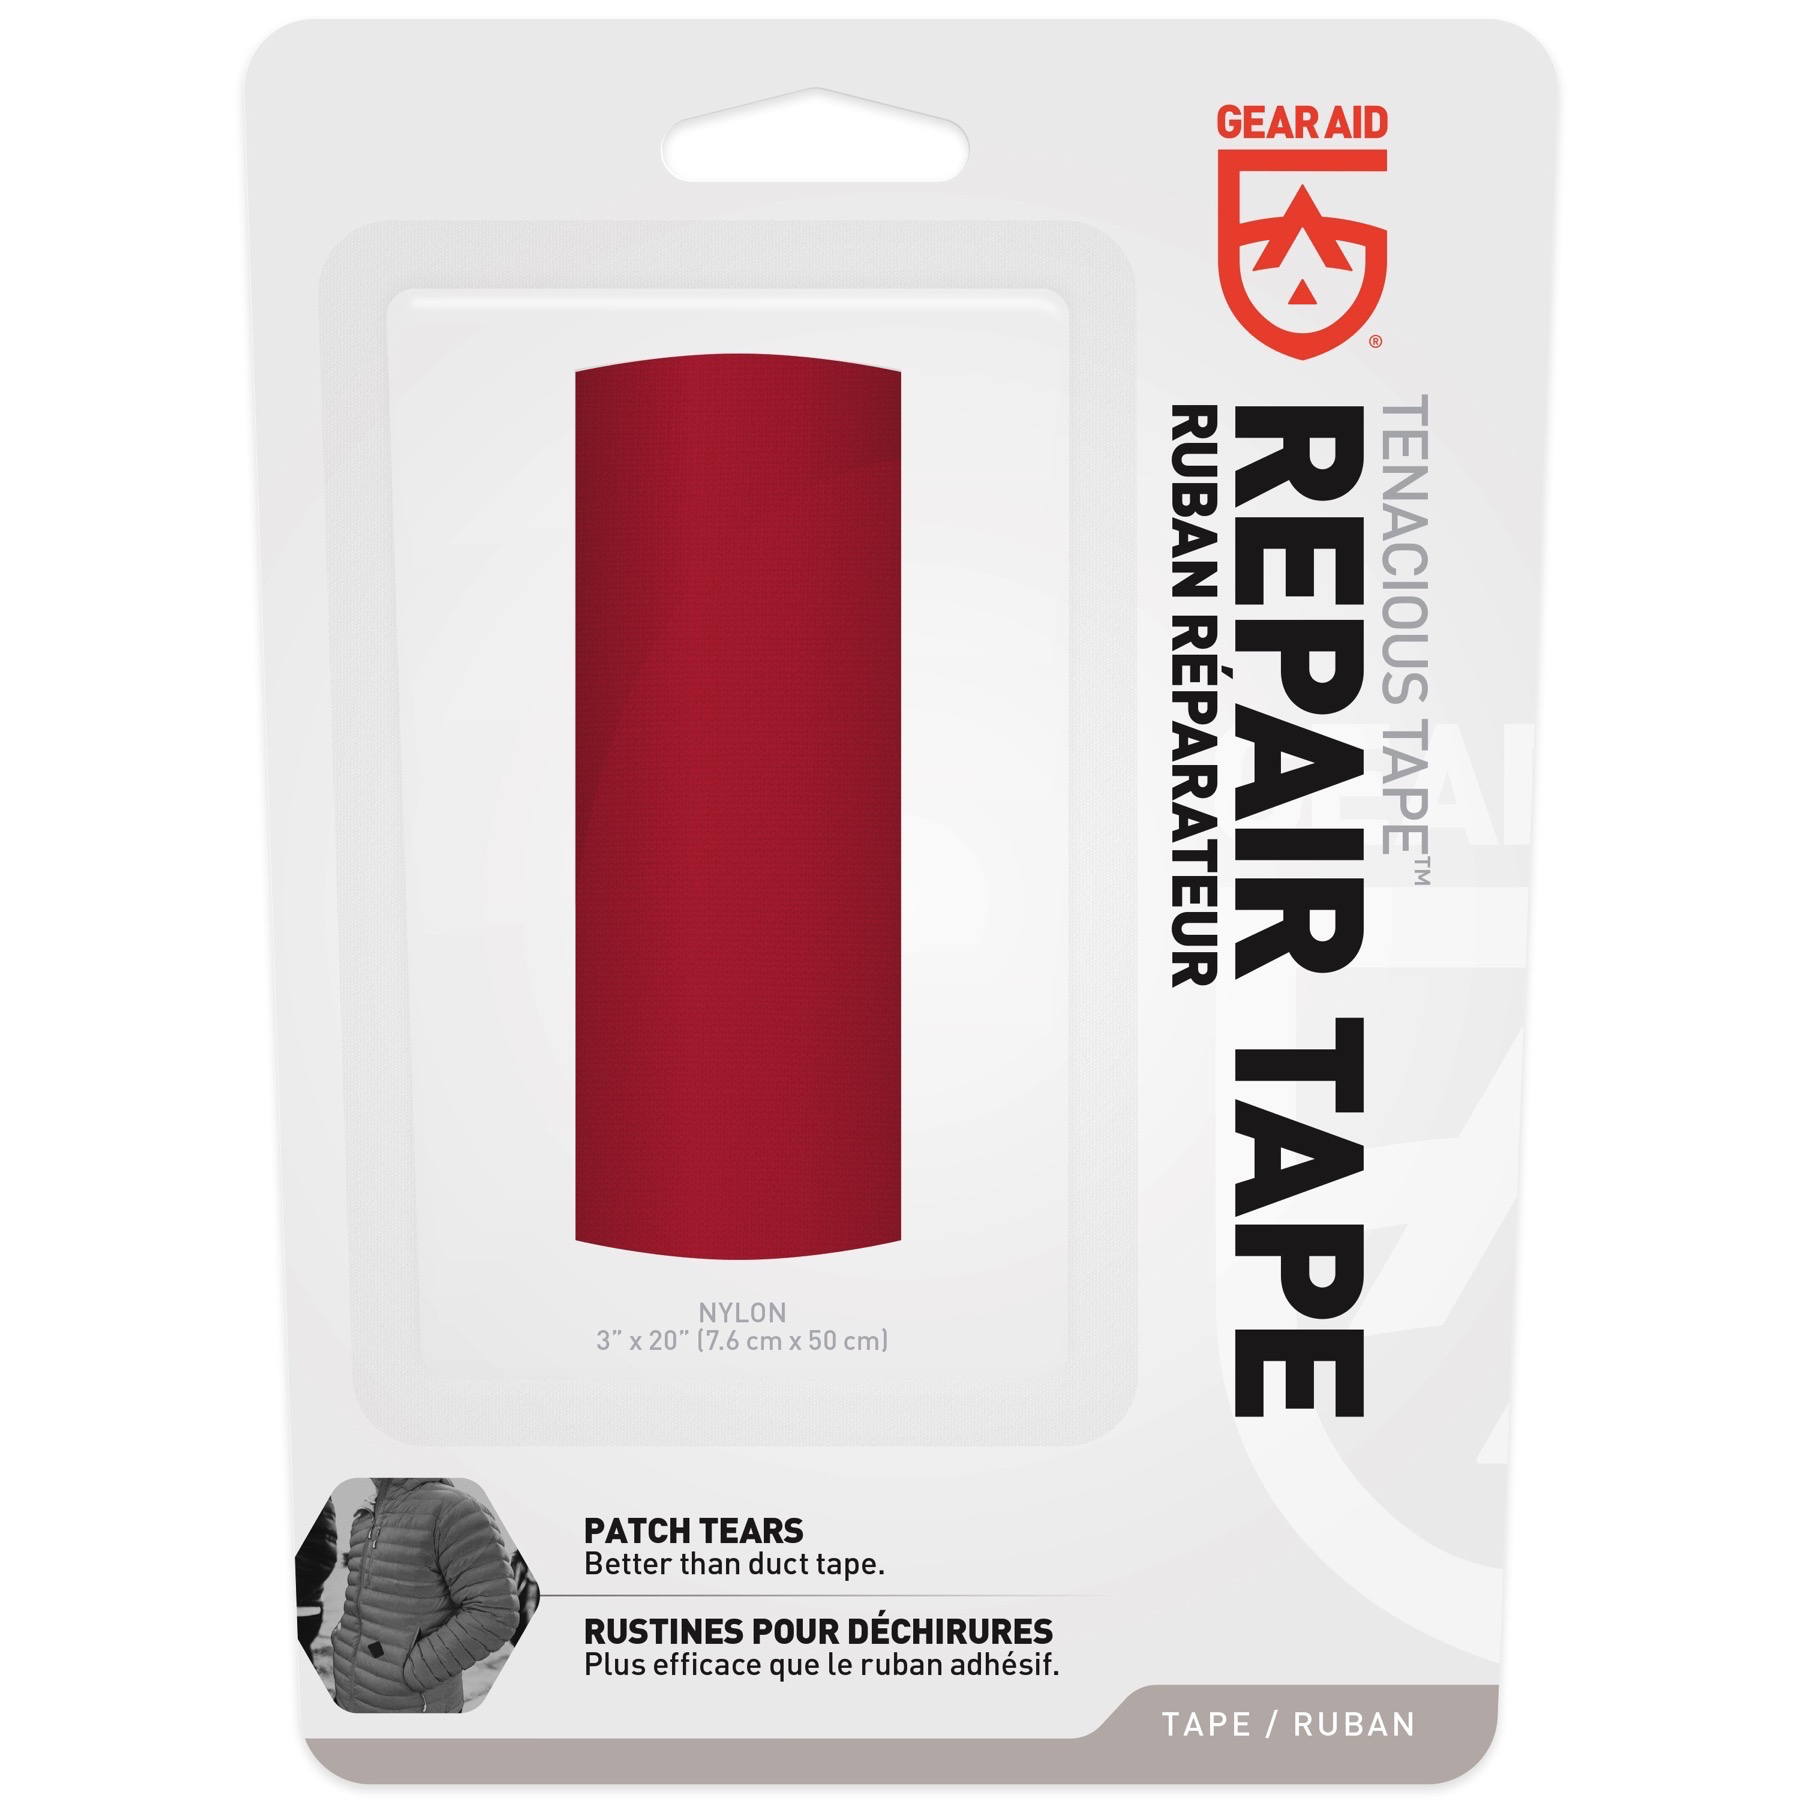 Teal Gear Aid Tenacious Tape for Fabric Repair Shipping Included